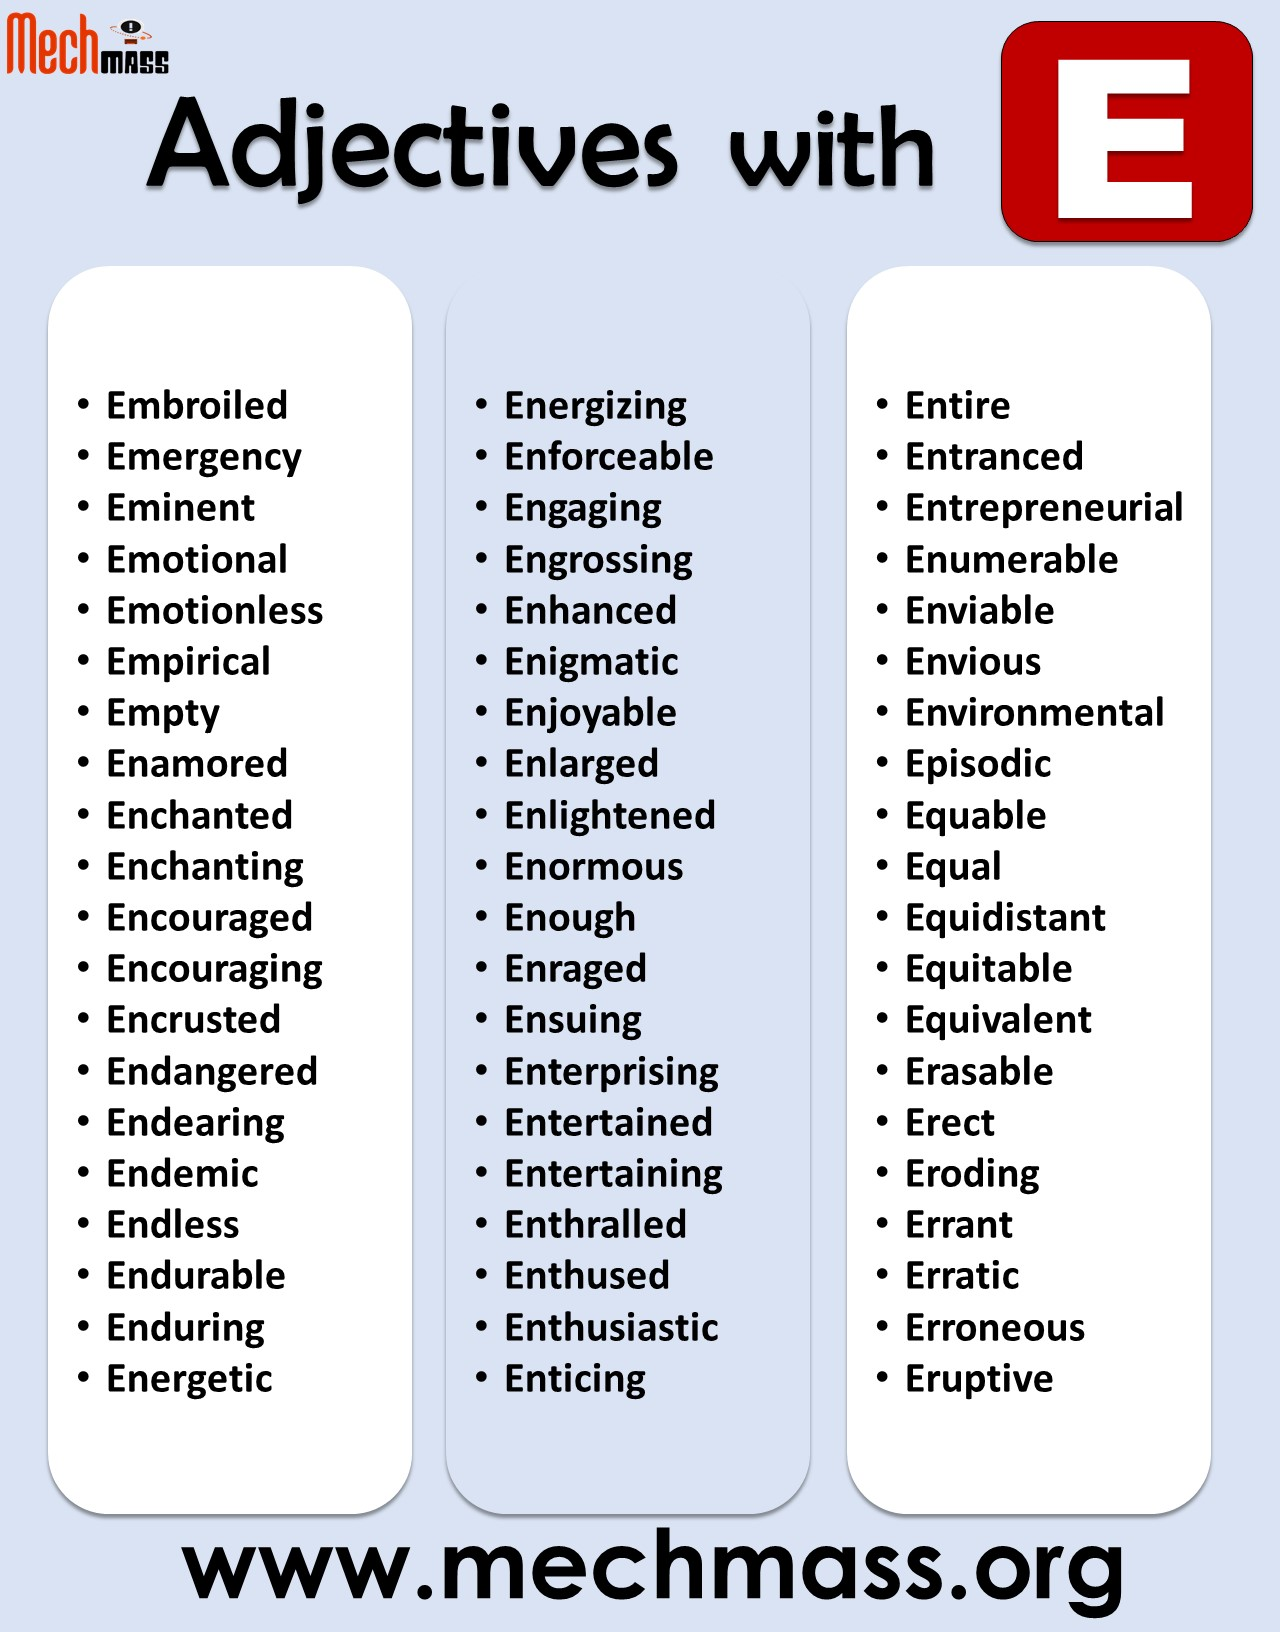 adjectives that start with e to describe a person positively